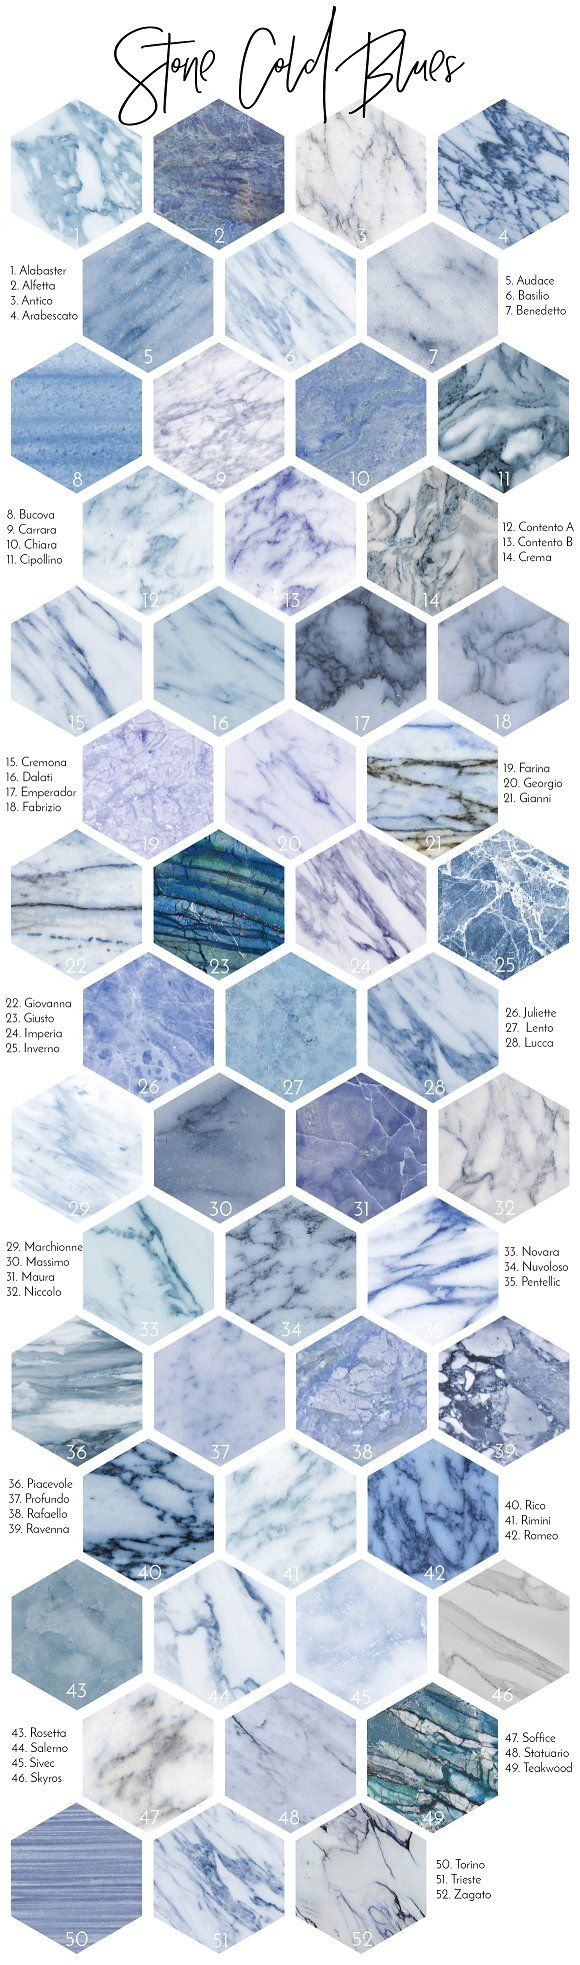 Real Marble Backgrounds Styles Marble Background Marble Design Design